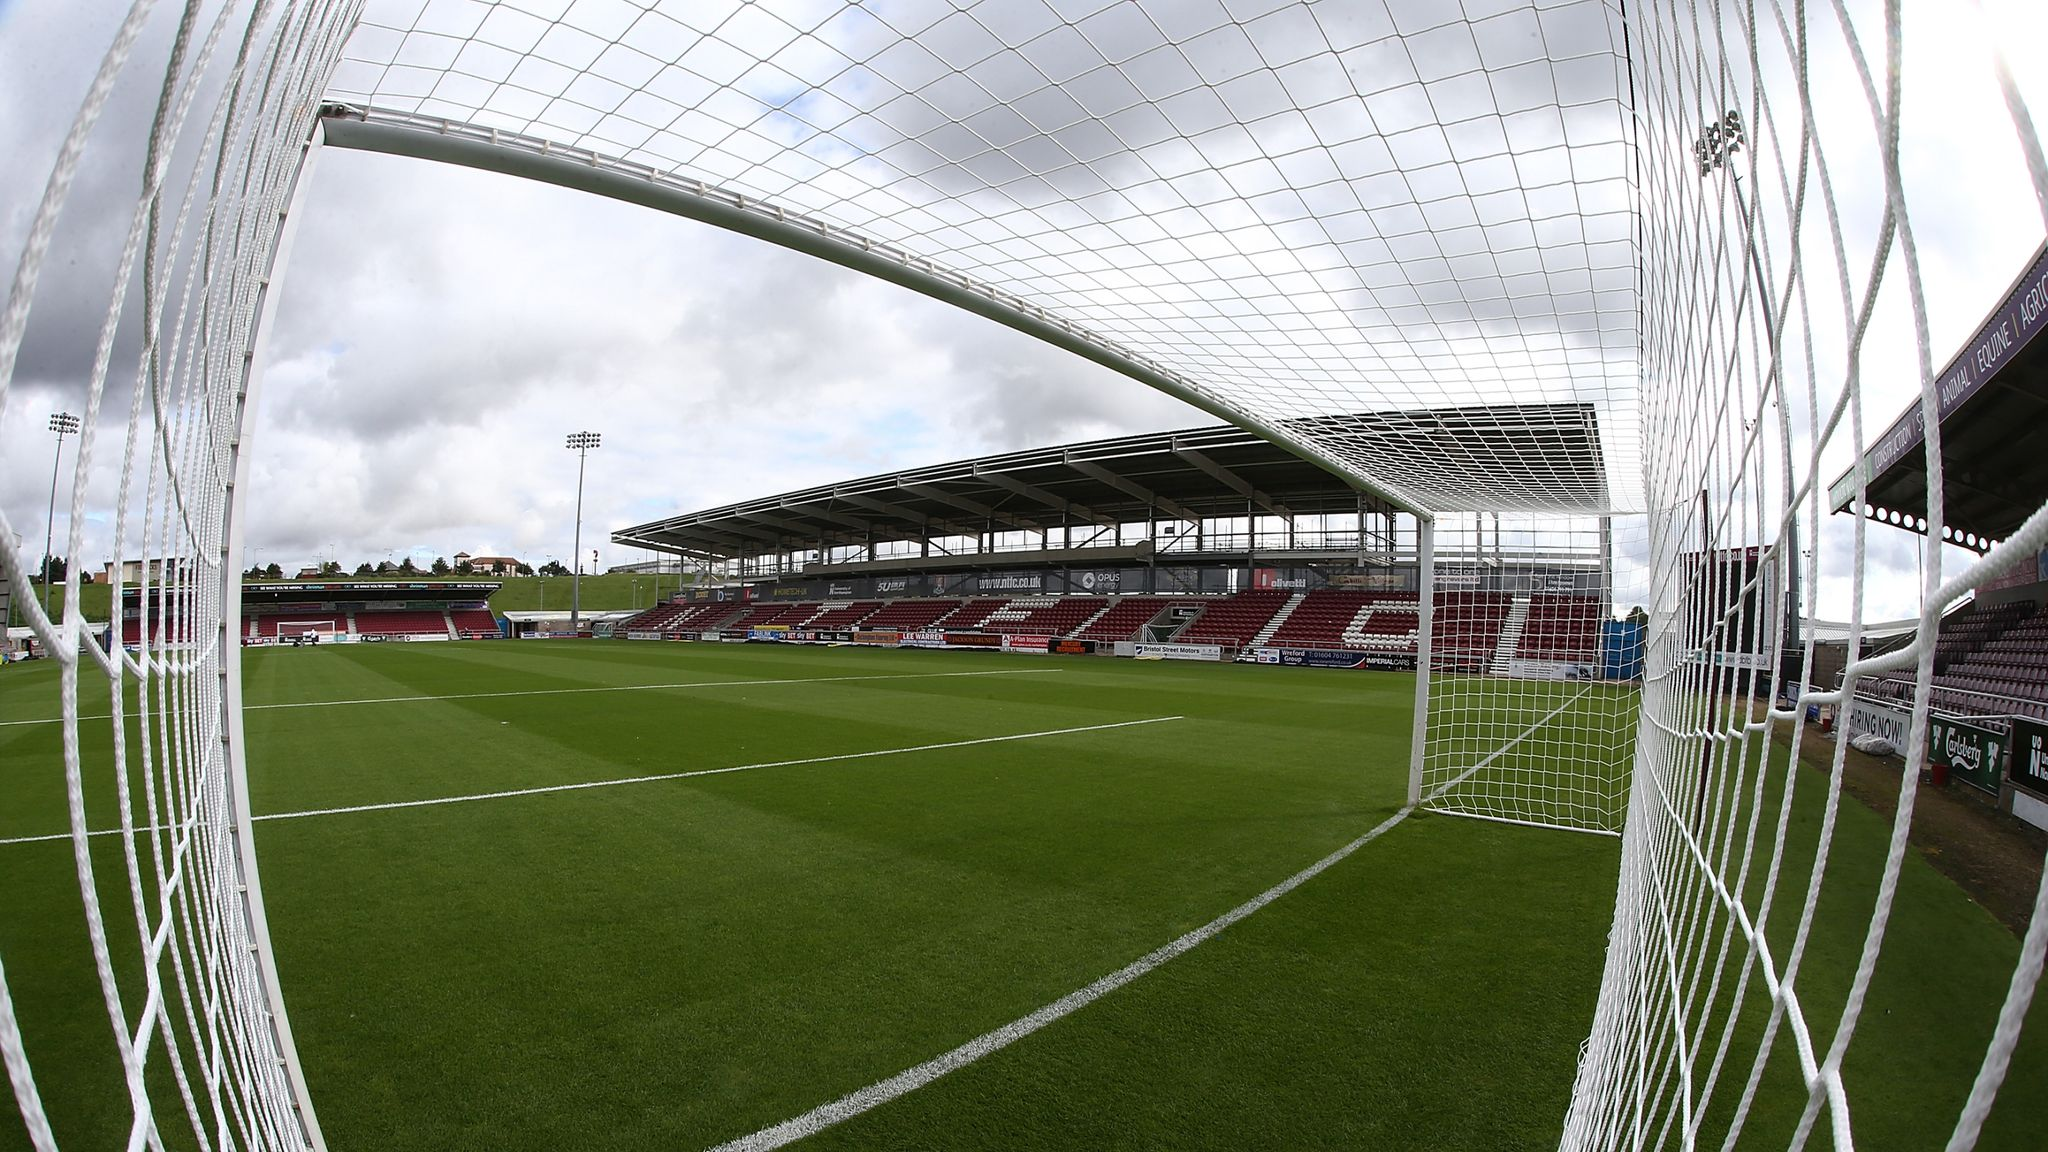 Police investigate allegations of racist chanting during Northampton vs Salford City